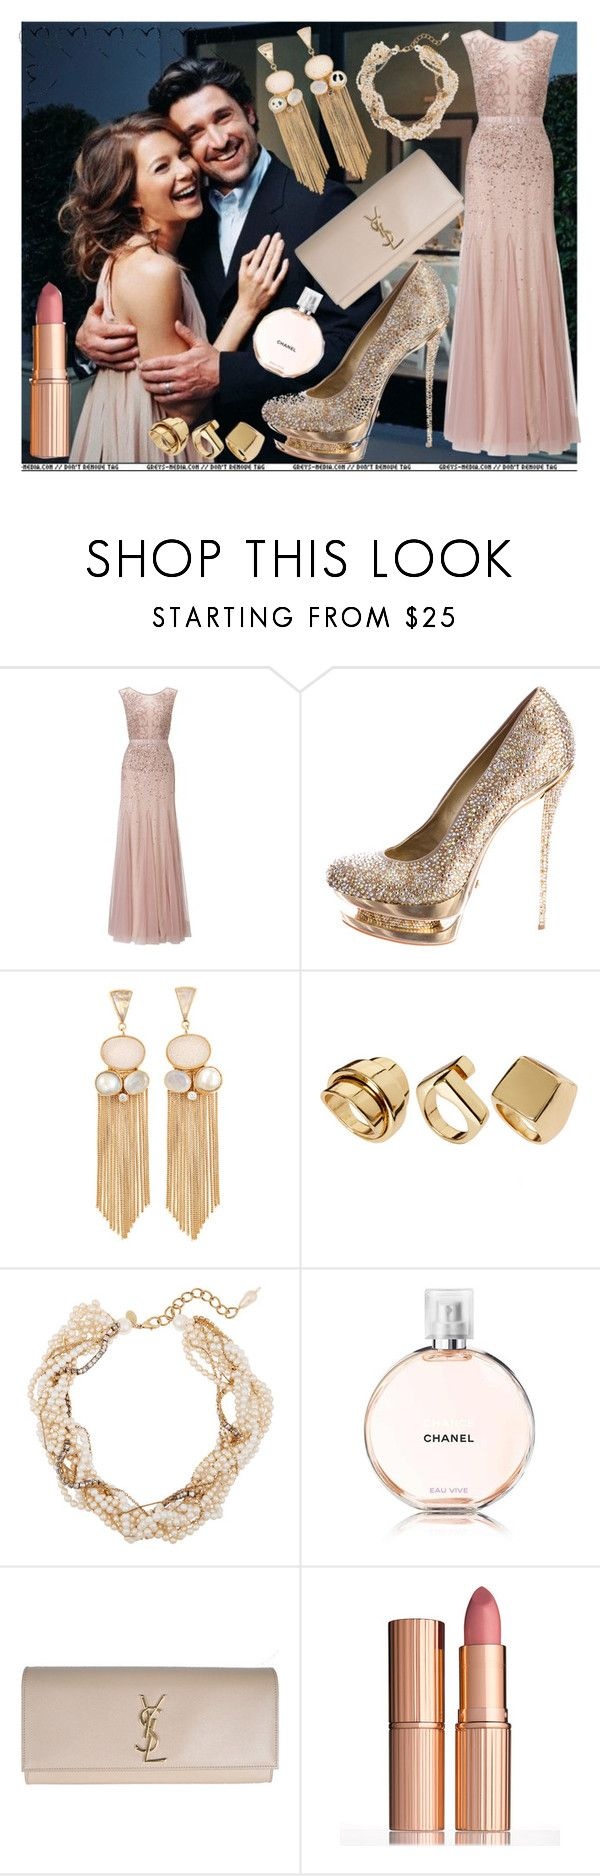 """So Pick Me, Choose Me, Love Me💕"" by s-he-be-lie-ve-d ❤ liked on Polyvore featuring Grey's Anatomy, Adrianna Papell, Gianmarco Lorenzi, Atelier Mon, River Island, Erickson Beamon, Chanel and Charlotte Tilbury"